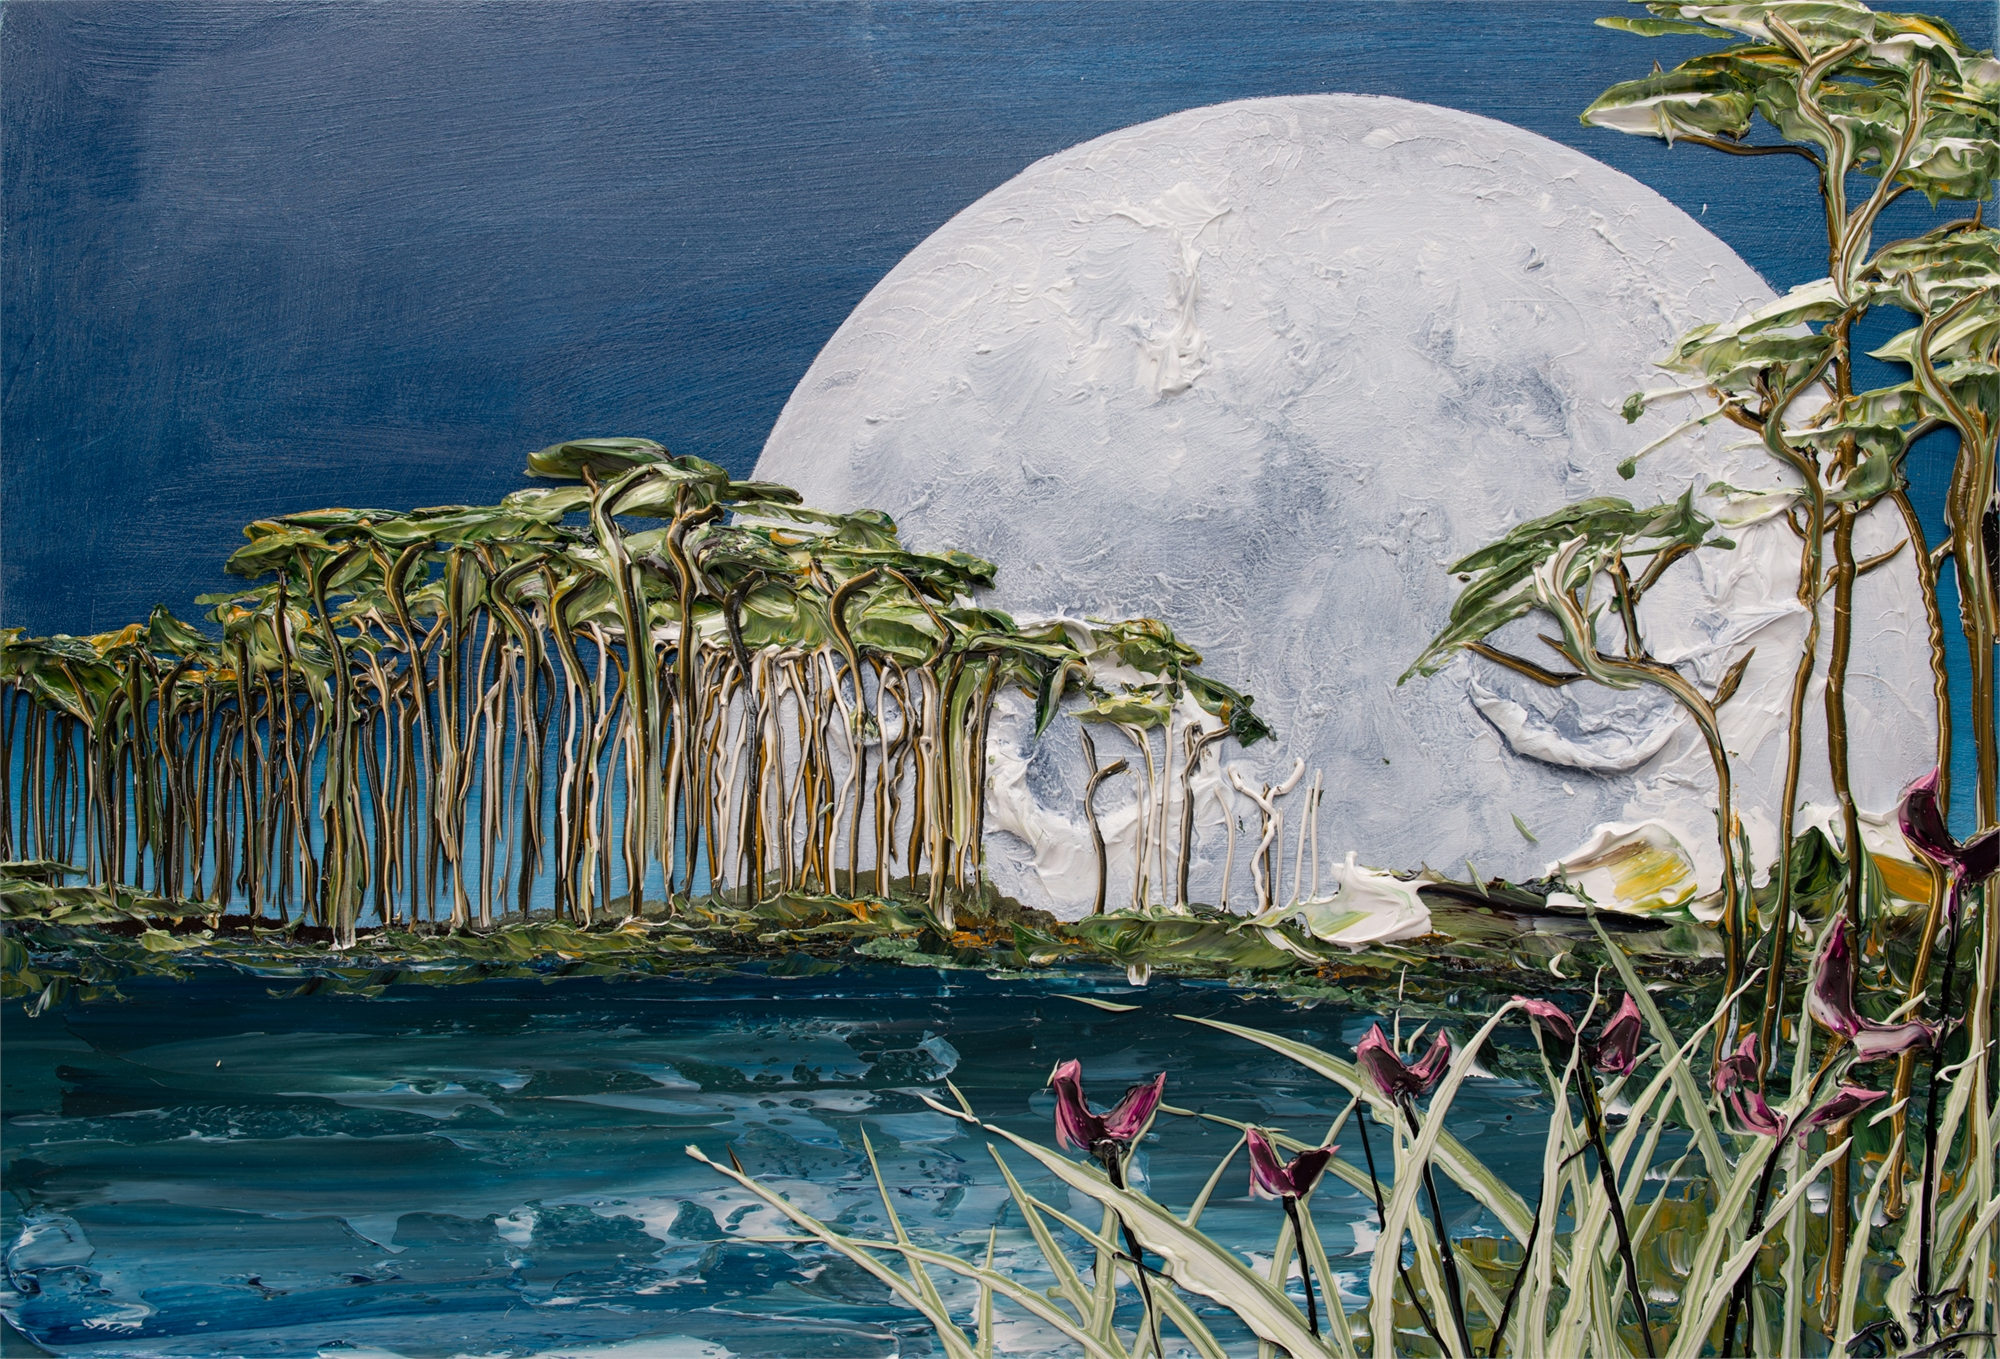 (SOLD) MOONSCAPE MS-35x24-2019-258 by JUSTIN GAFFREY